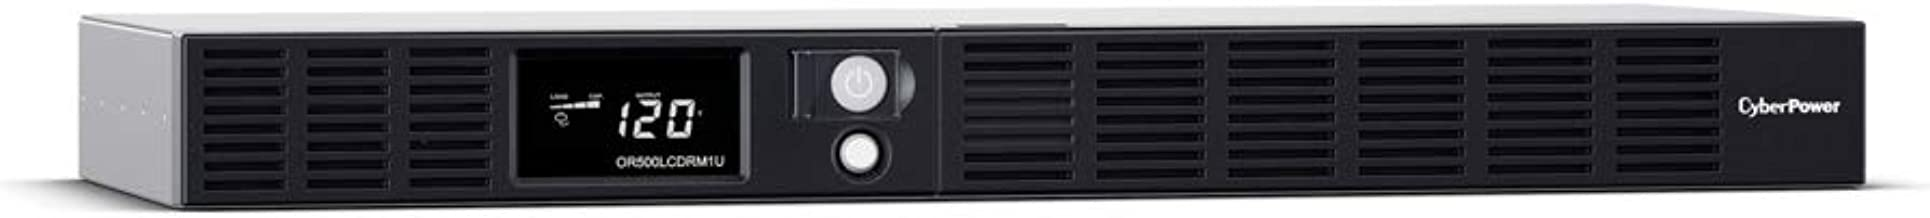 CyberPower OR500LCDRM1U Smart App LCD UPS System, 500VA/300W, 6 Outlets, AVR, 1U Rackmount